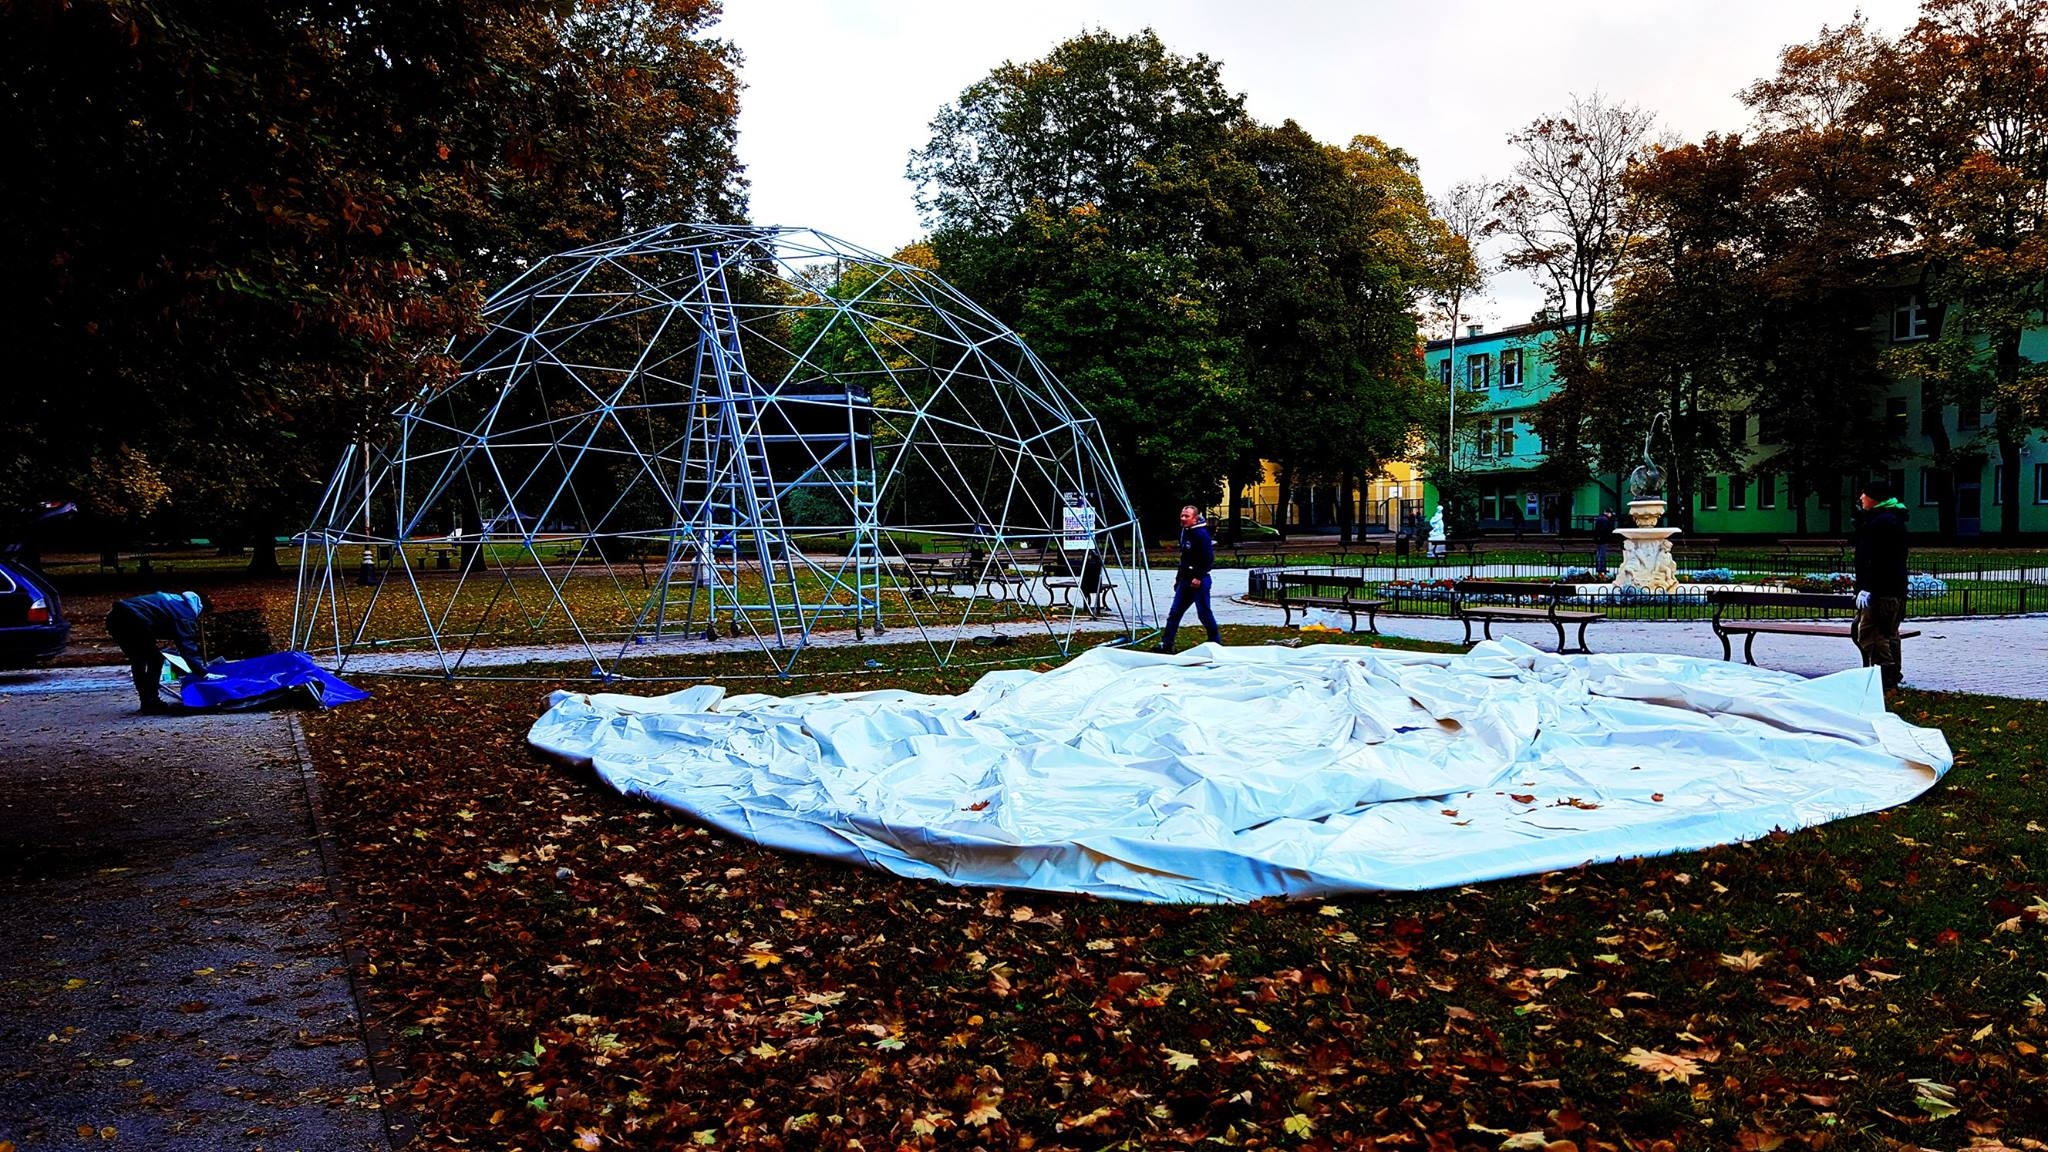 Portable Dome Ø11m For LIGHT MOVE FESTIVAL | Kinetic Art, Lodz, Poland